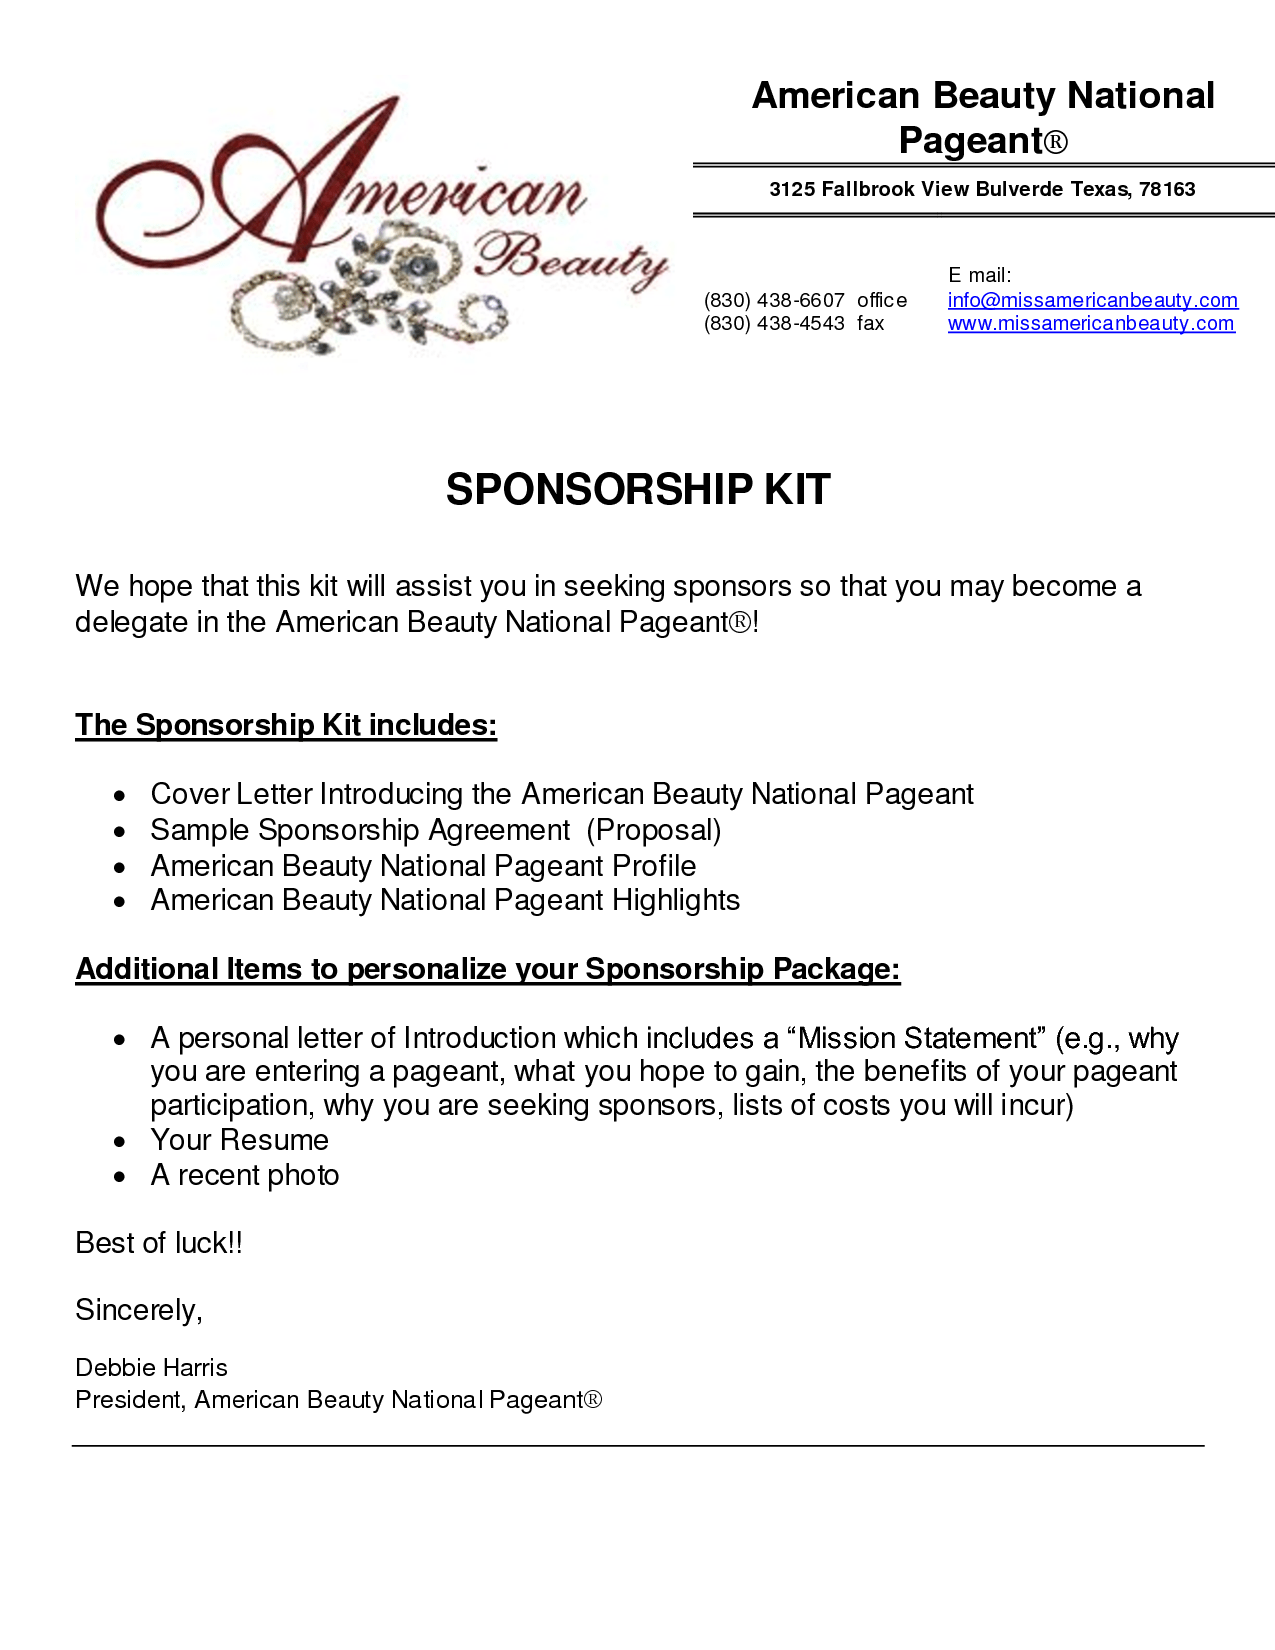 6 Sponsorship Proposal Templates Excel PDF Formats – Sponsorship Proposals for Events